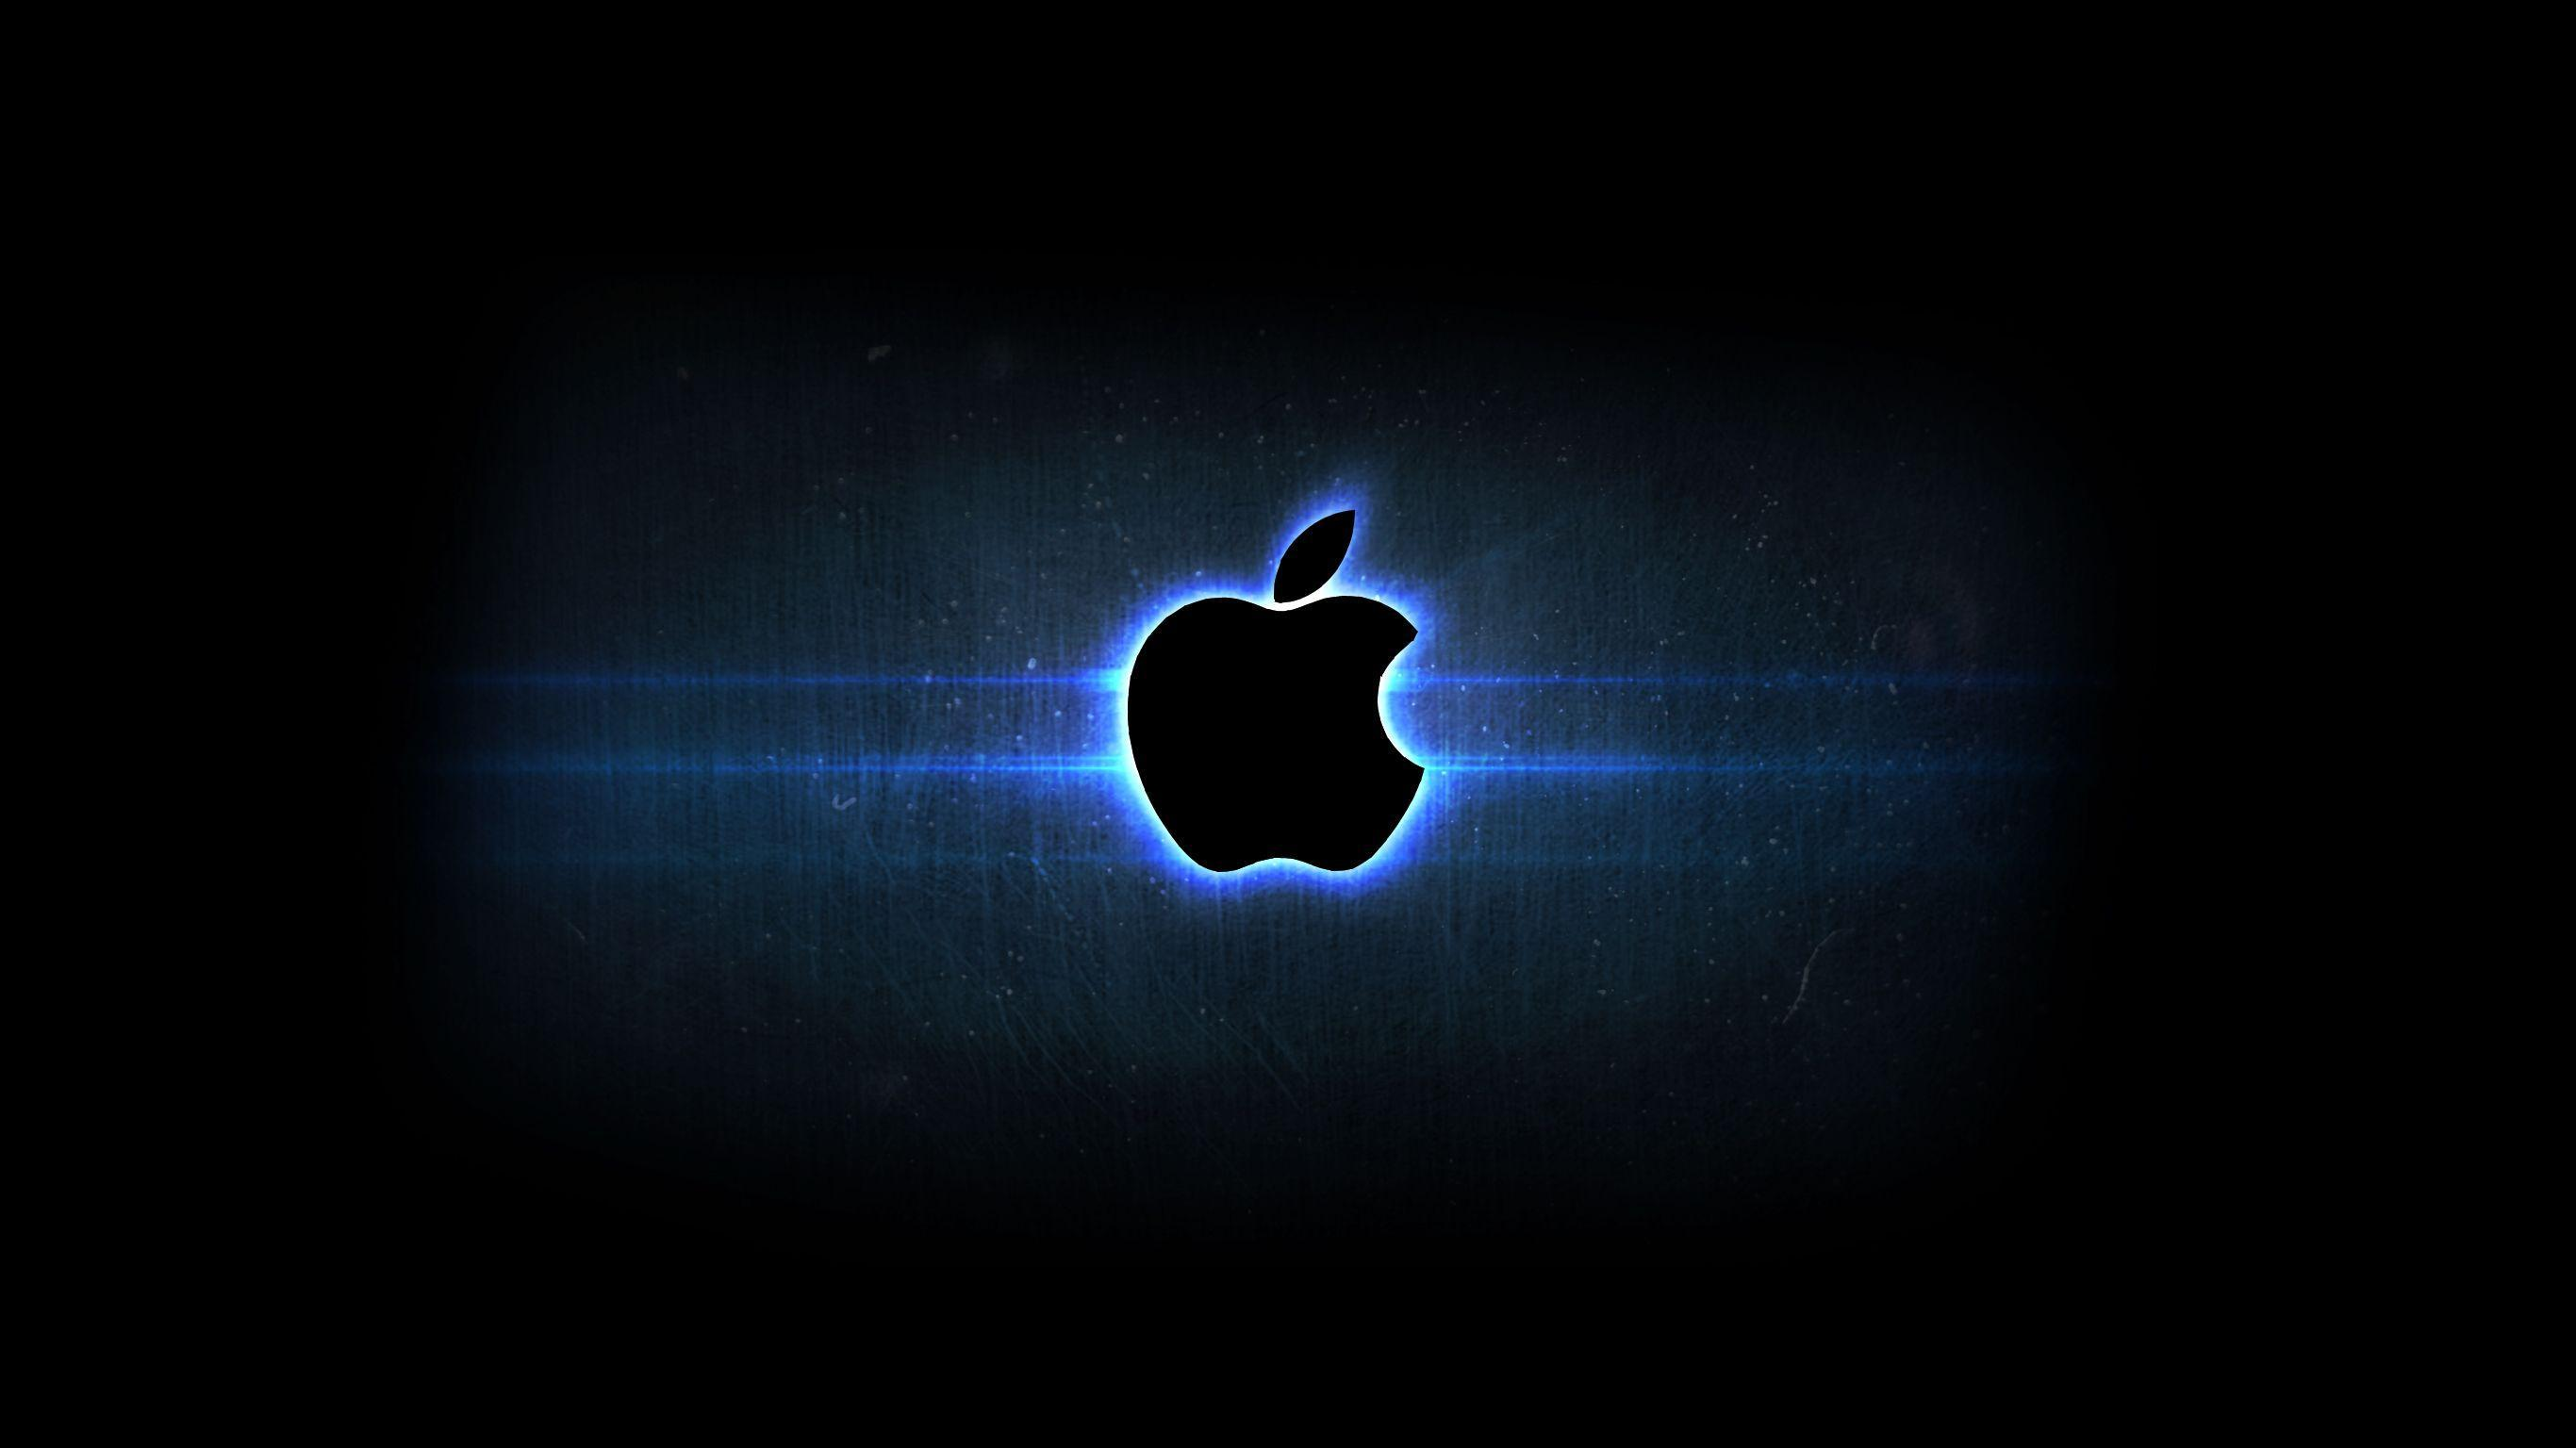 Apple Wallpaper/Backgrounds by TimSaunders